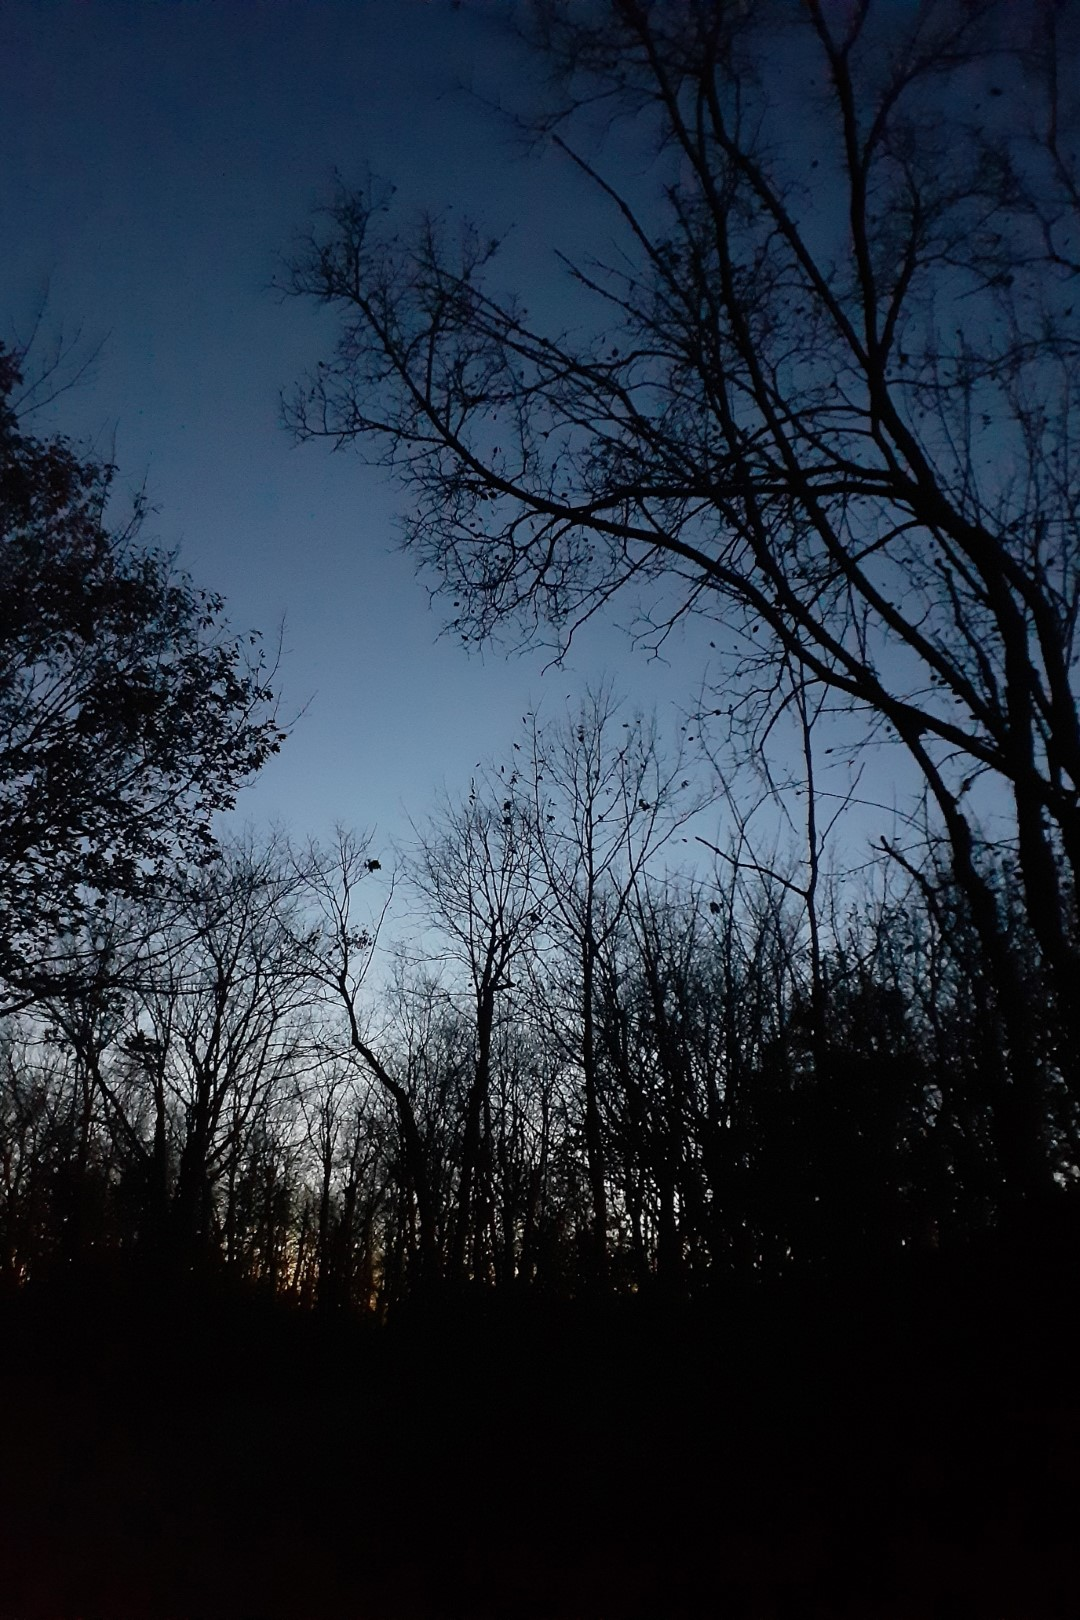 Clear sky, cold night, Ottawa, October 2020